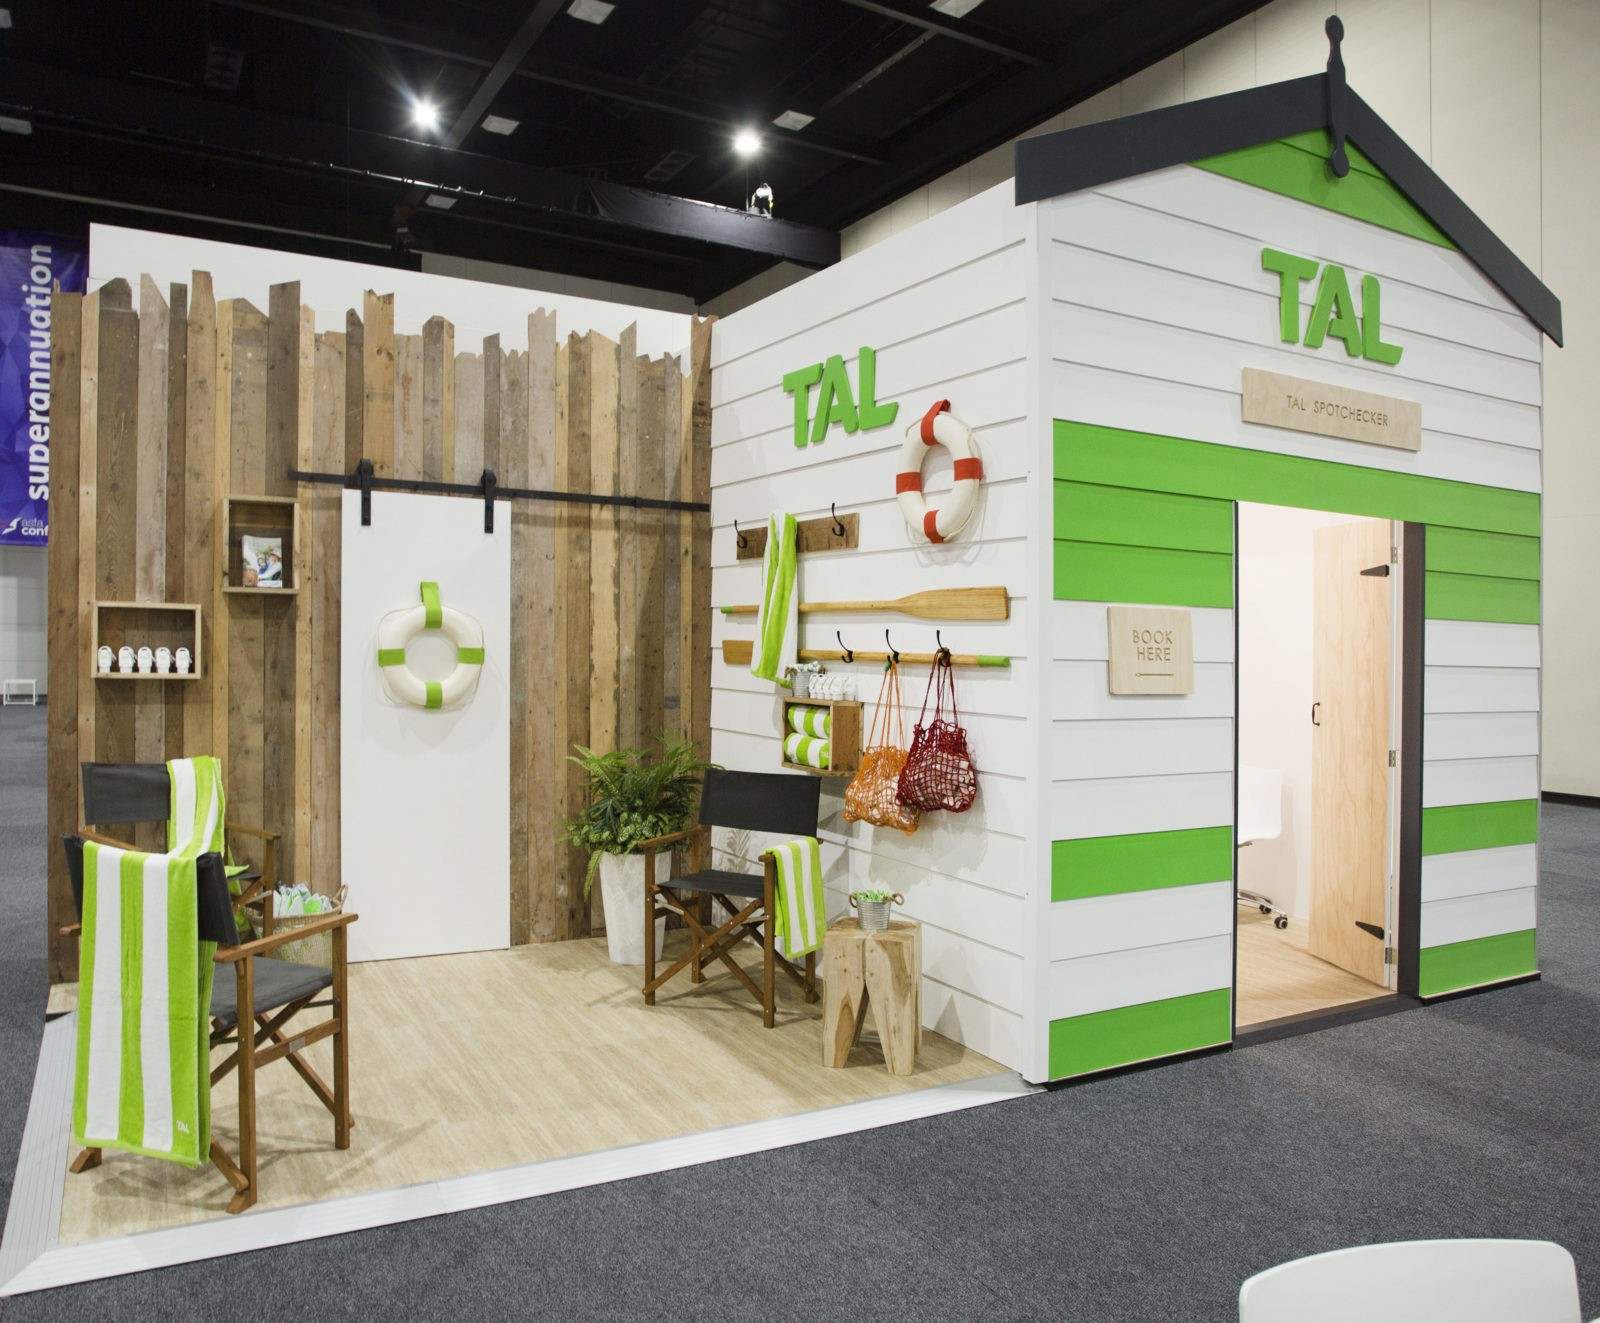 Let Them Know! Here is your Guide in hiring builders for your exhibition events